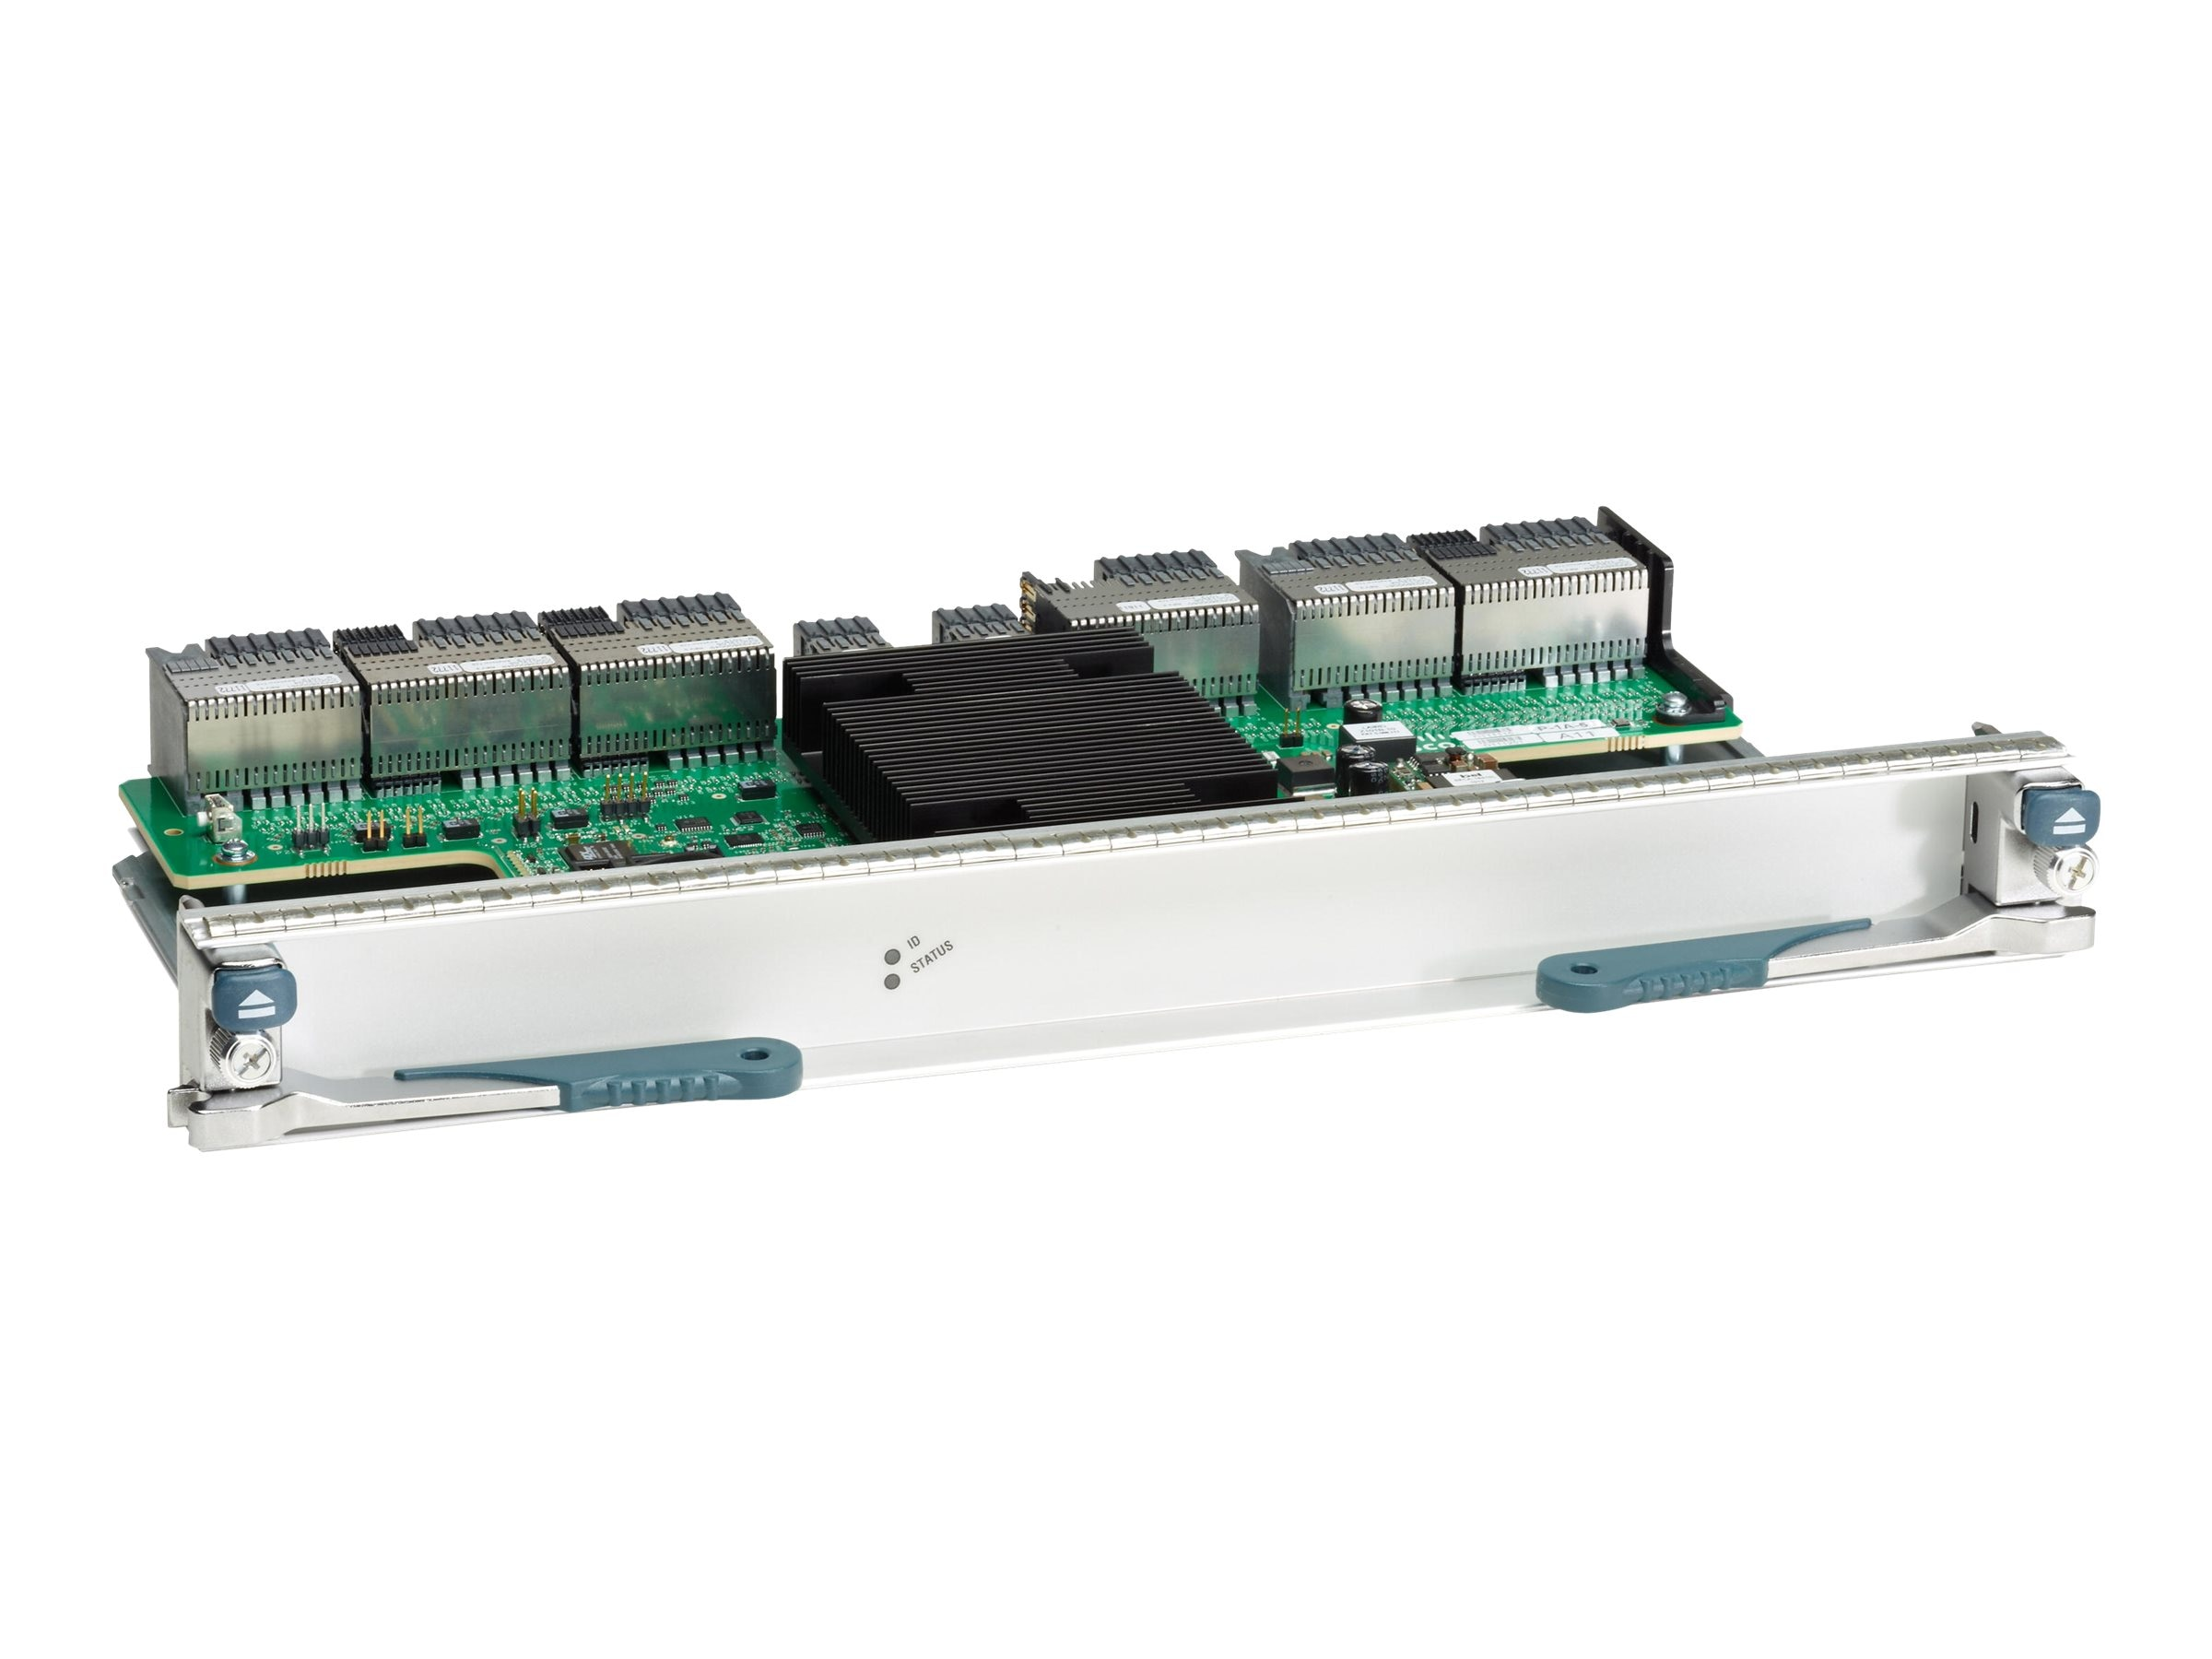 Cisco Nexus 7000 10-Slot Chassis 110Gbps Fabric Module, N7K-C7010-FAB-2, 13369253, Network Device Modules & Accessories